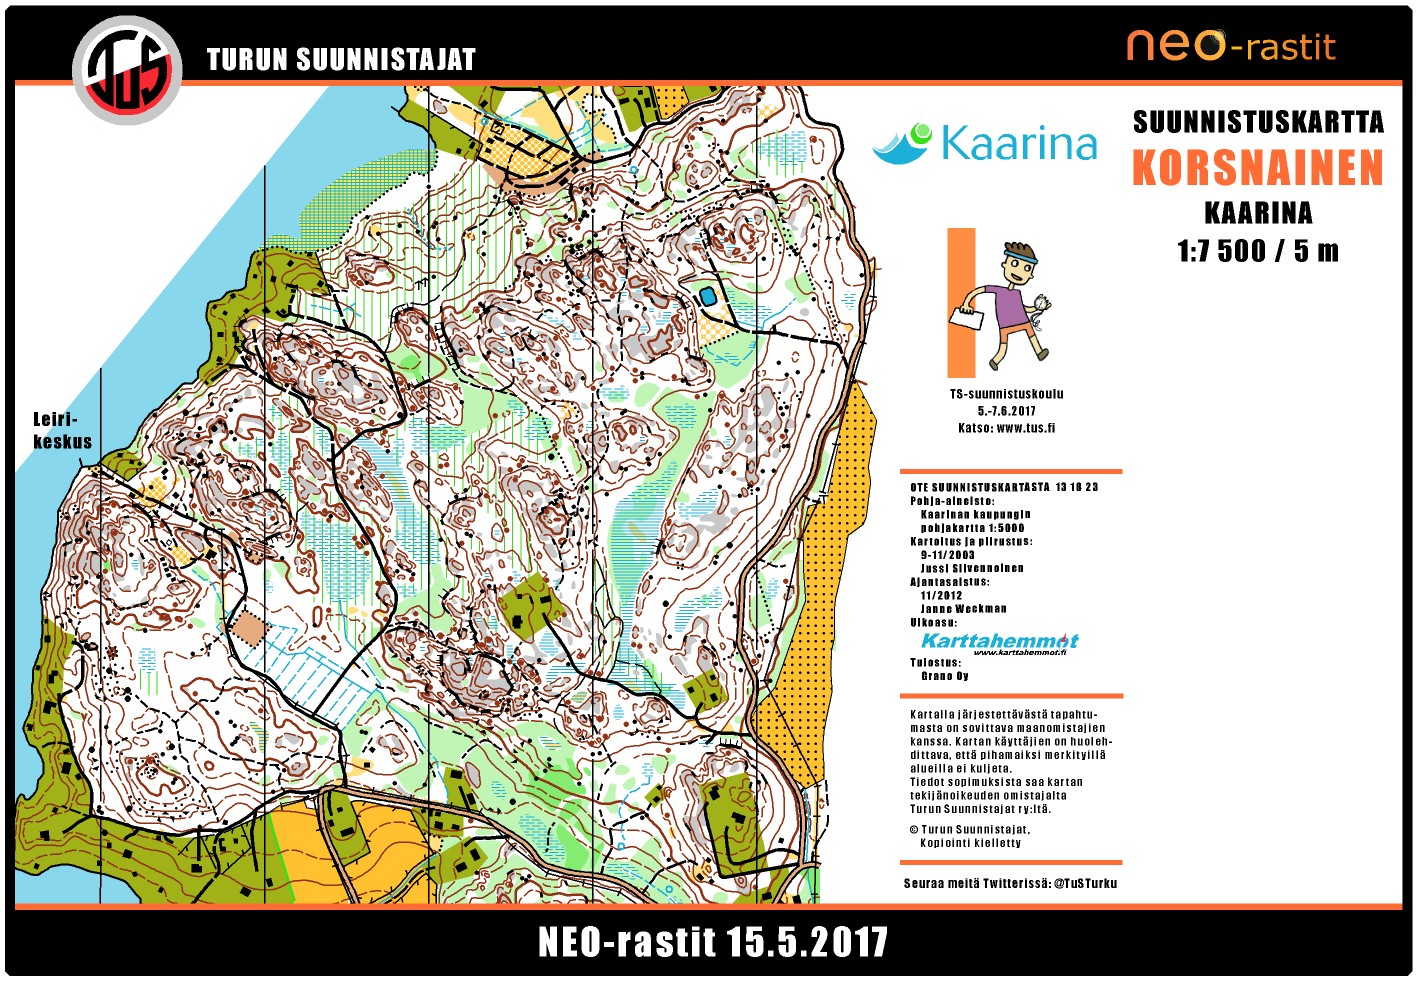 Neo Rastit 15 5 2017 May 15th 2017 Orienteering Map From